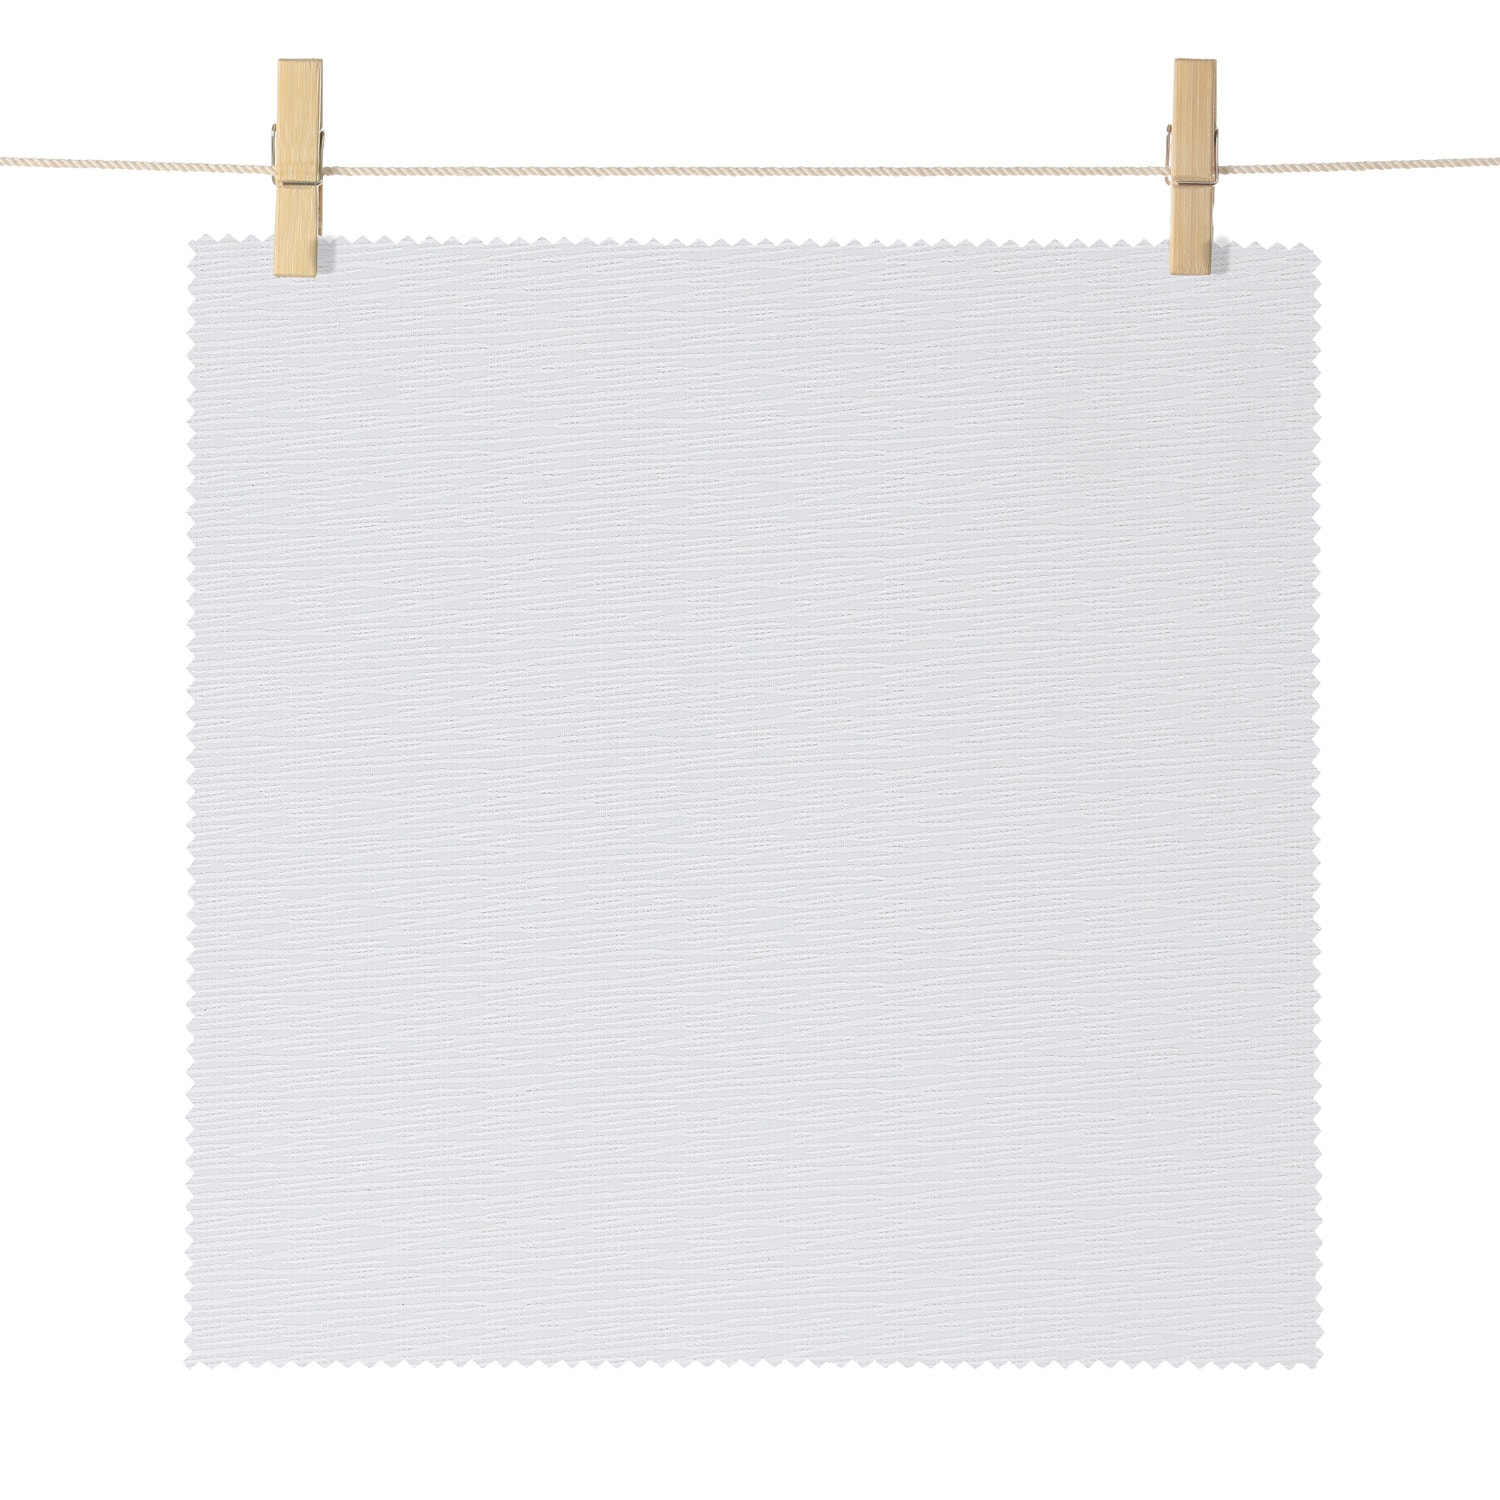 Dunsmuir Cream Boucle Textured Blackout Roller Shade Swatch